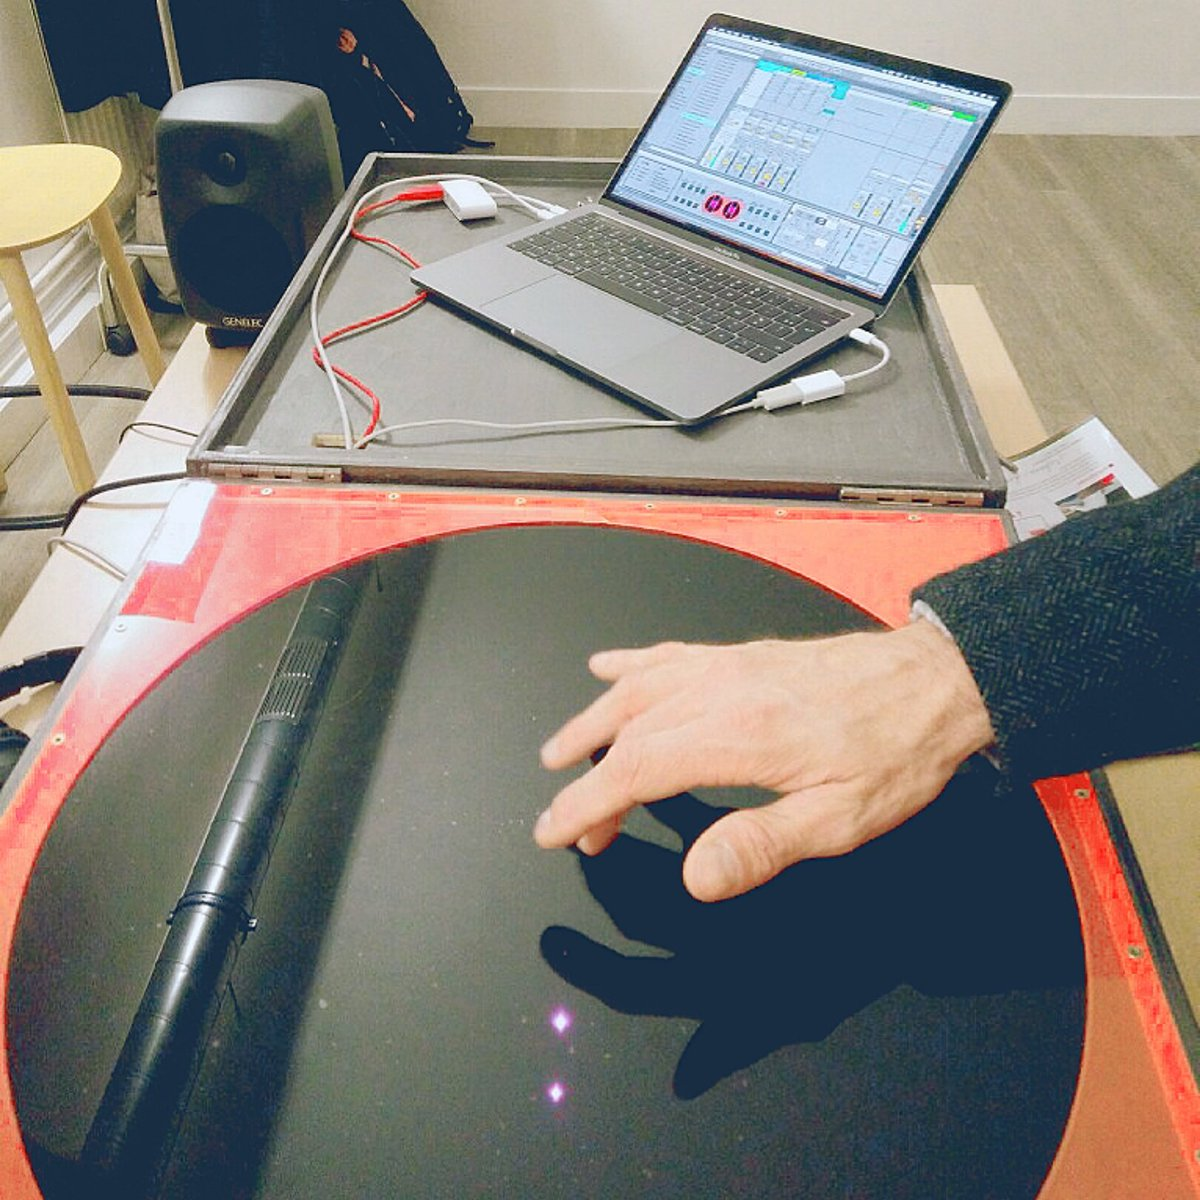 @embodme is making #music with gesture  &amp; @kinect infrared  @futuresfestival @Cap_Digital #humainXmachine  #tech #innovation #IHM #HCI #futur #interfaces #startup<br>http://pic.twitter.com/cwtFciQXbD